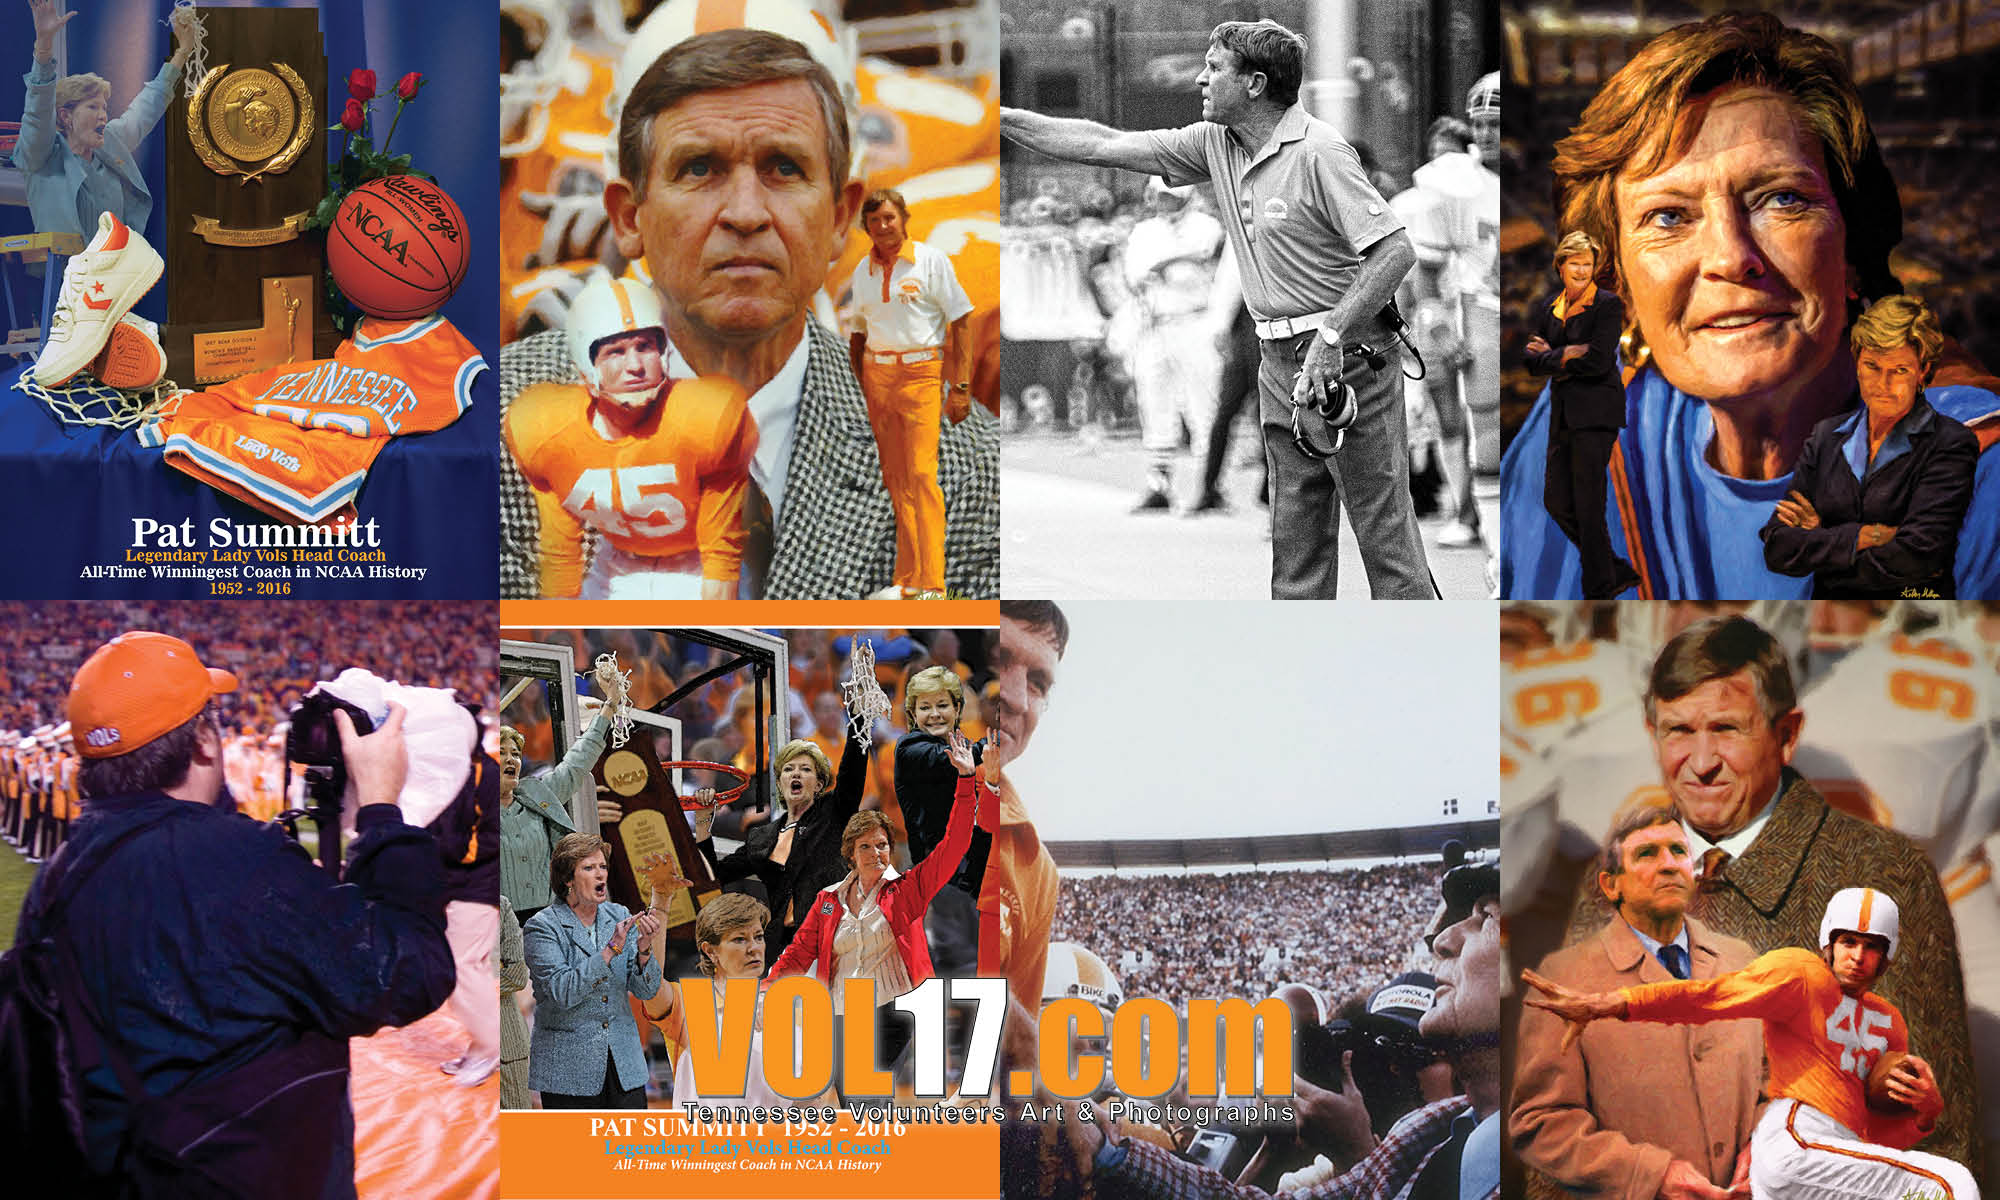 VOL17.com Johnny Majors, Pat Summit, Phil Reich